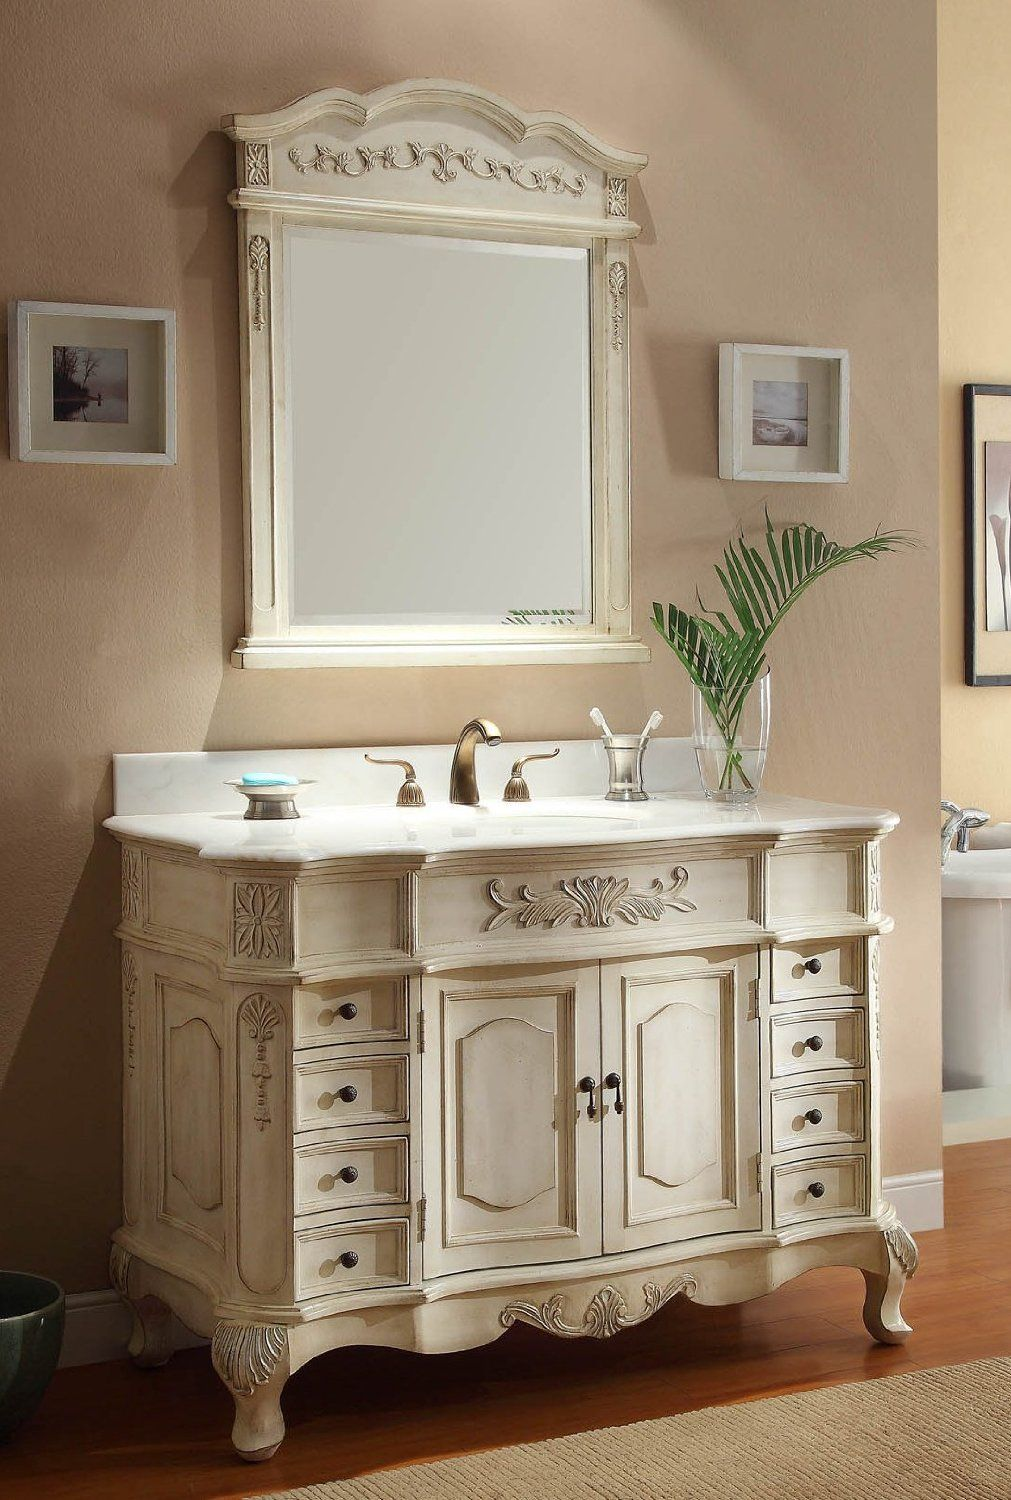 Adelina 48 inch Antique White Bathroom Vanity Fully Assembled (Possibly 2  vanties in new BR - Adelina 48 Inch Antique White Bathroom Vanity Fully Assembled